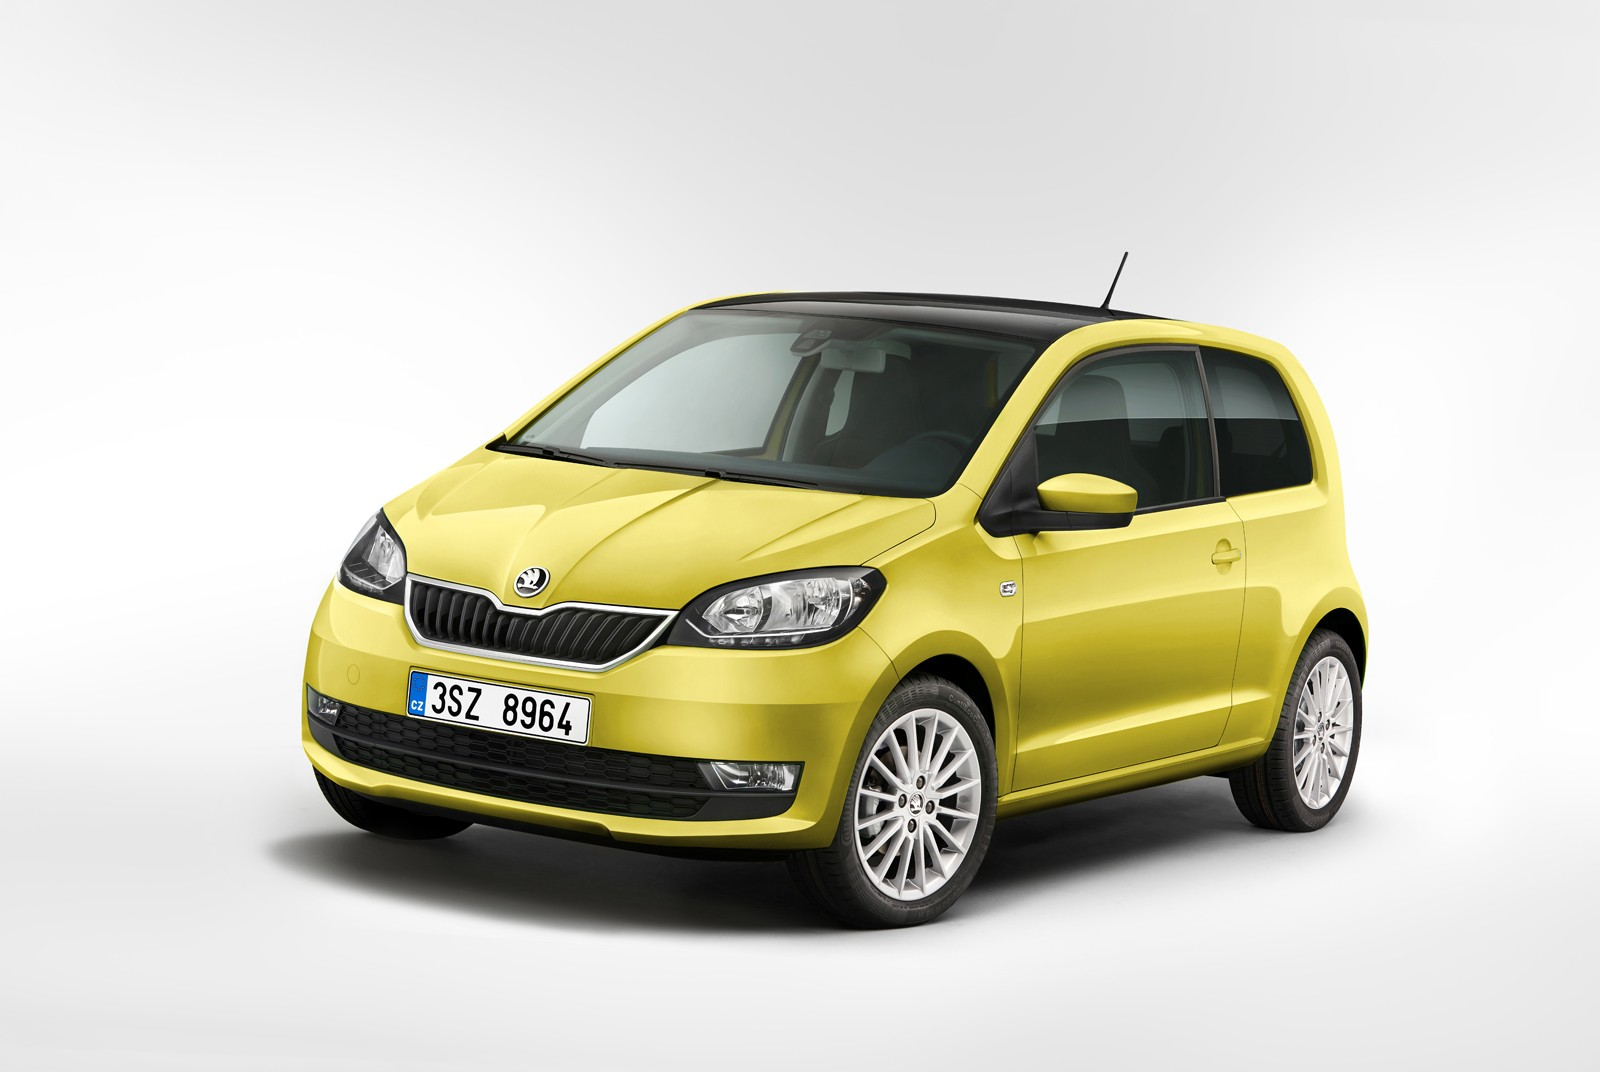 skoda citigo facelift revealed seems modeled after fabia autoevolution. Black Bedroom Furniture Sets. Home Design Ideas